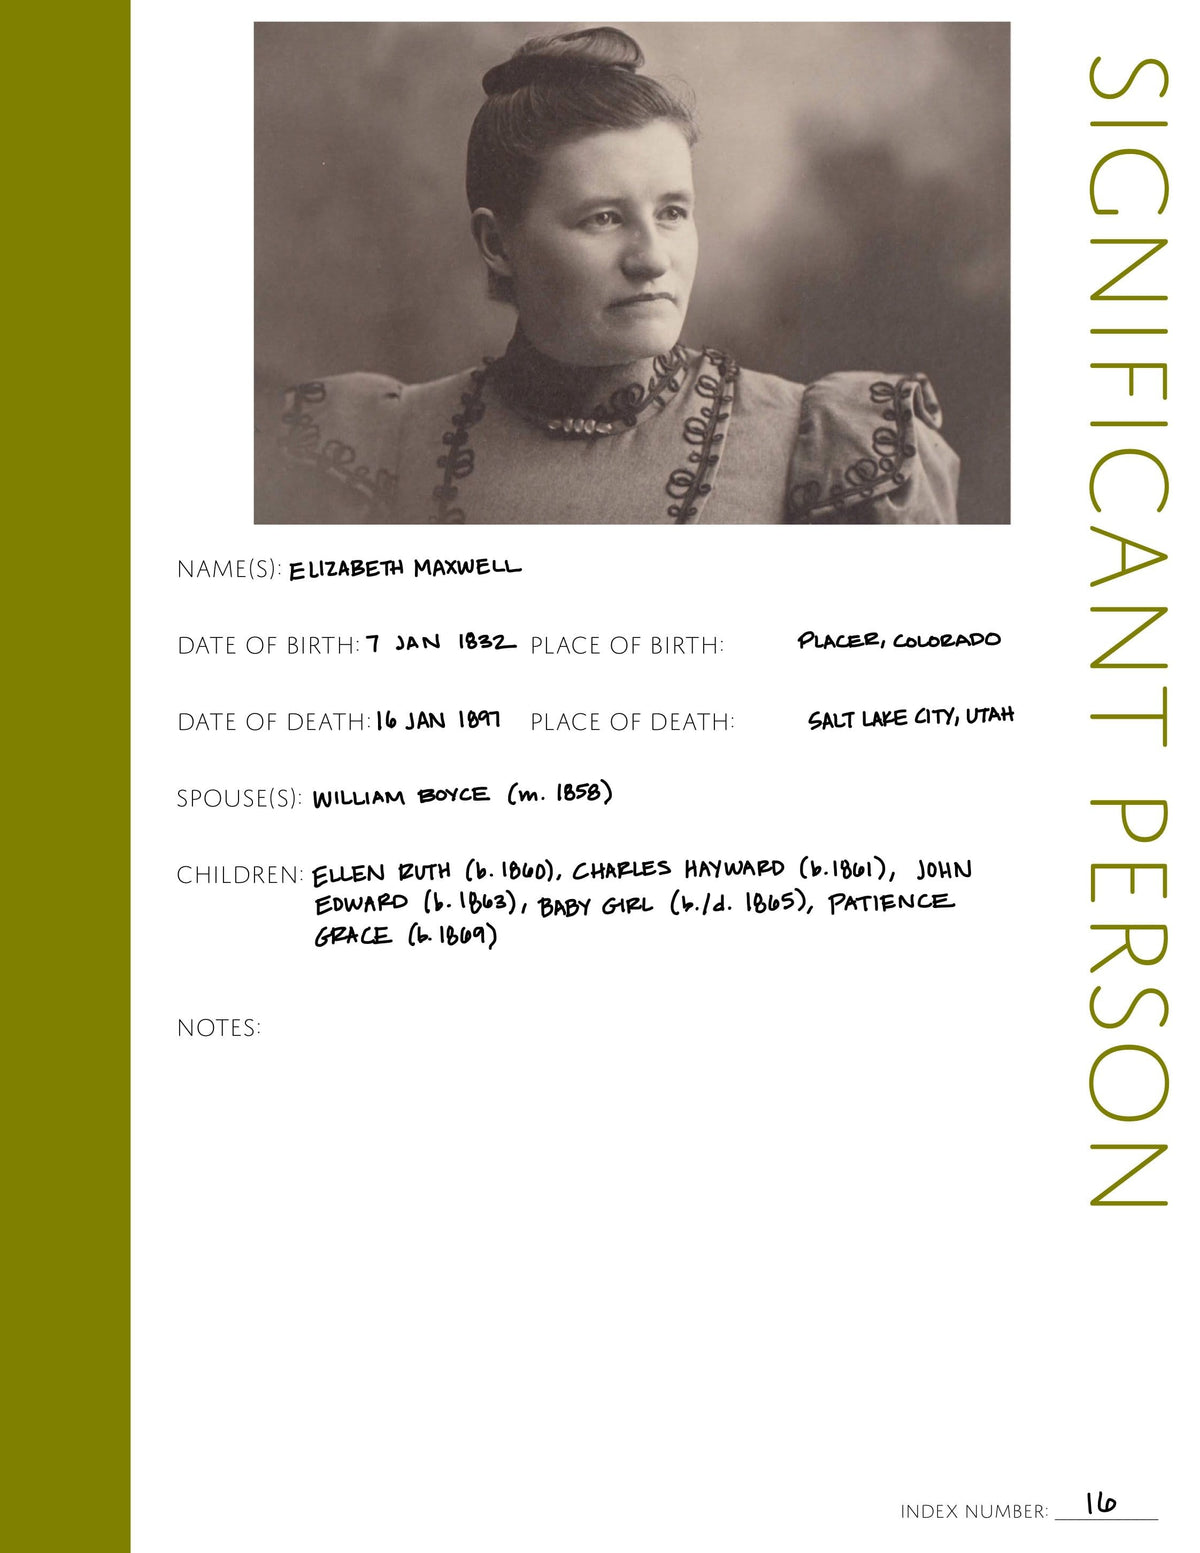 Significant Person Profile Page: Printable Genealogy Form (Digital Download)